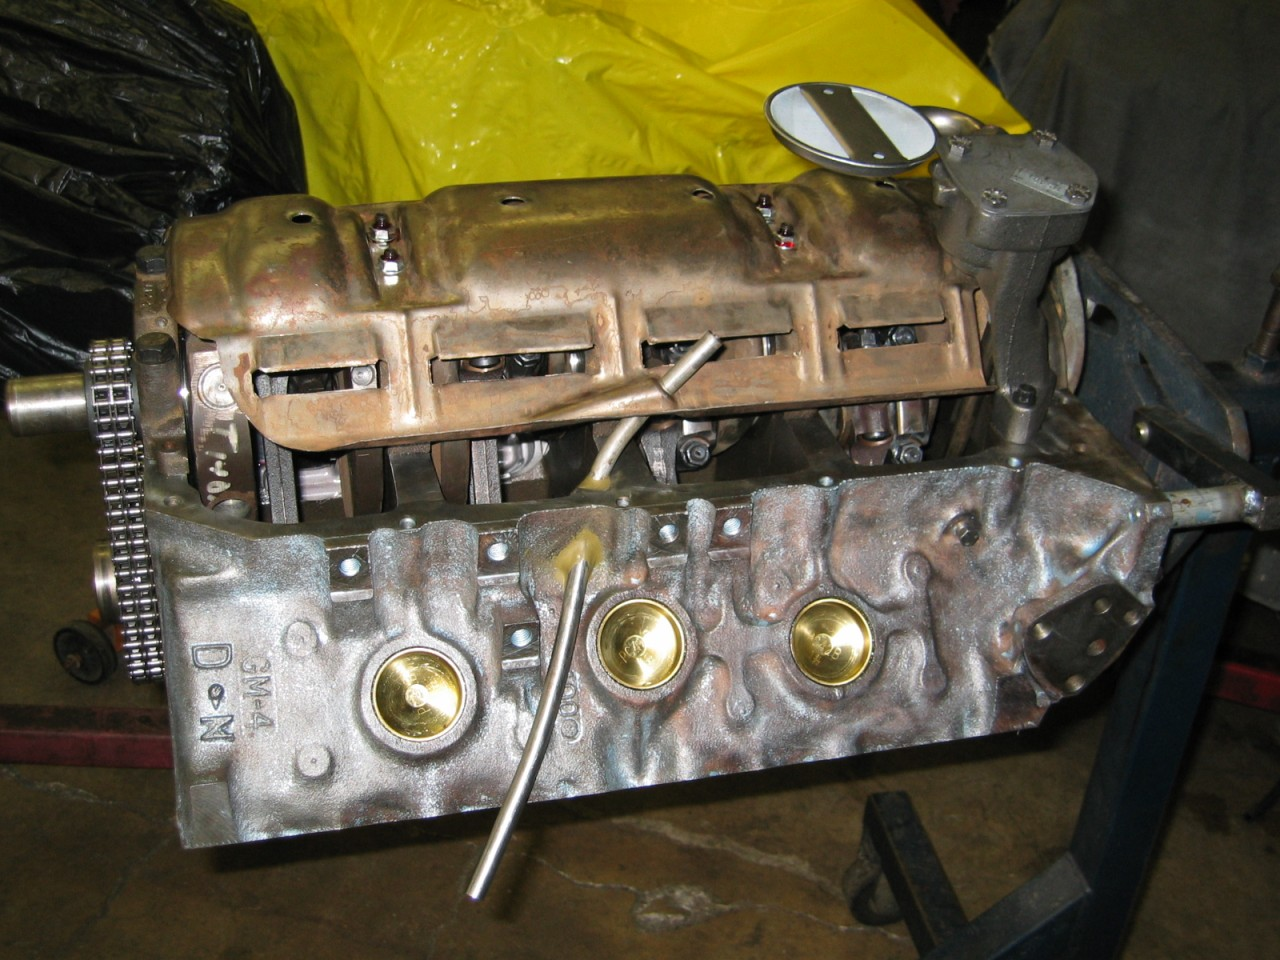 Restoration Projects 1969 Firebird 1977 Trans Am 1954 Truck Pontiac Engine Oil Here Is The Completed Bottom Side Of I Installed A High Volume Pump And Full Size Windage Tray